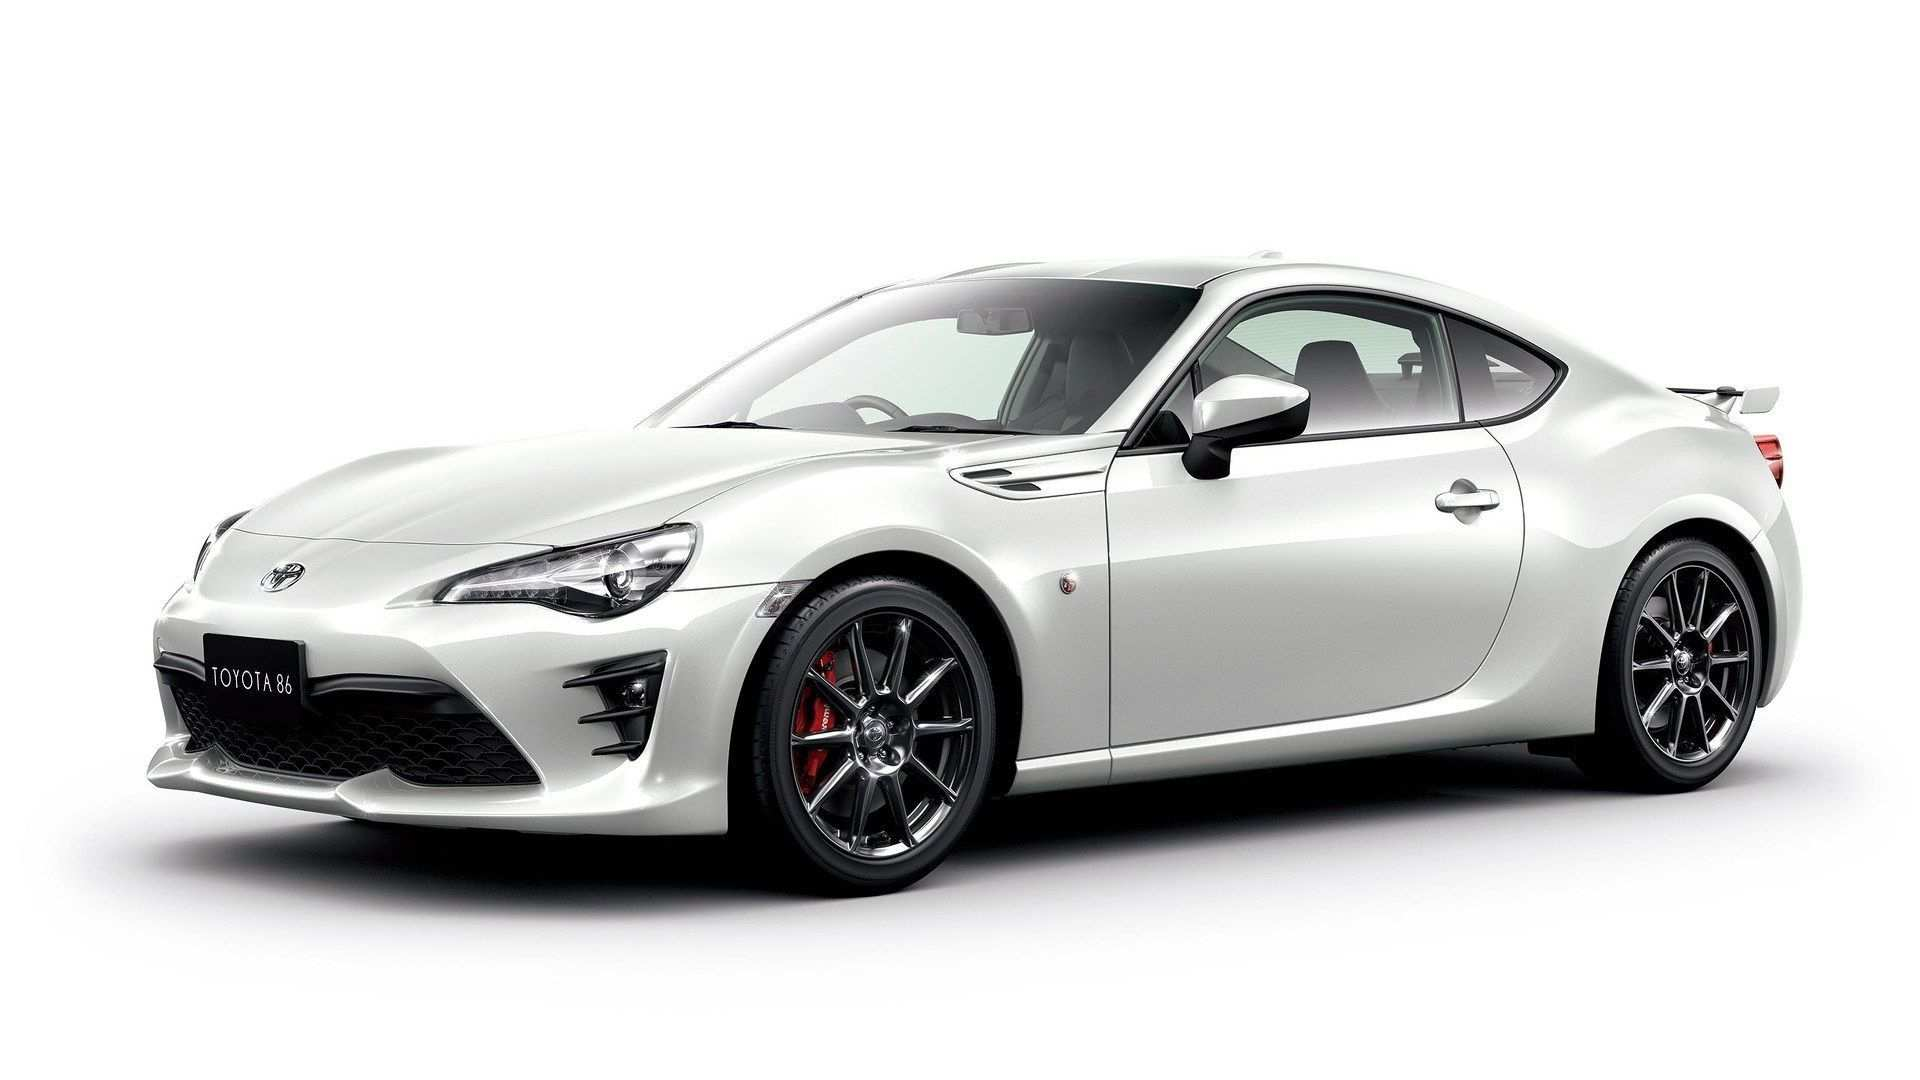 46 All New 2019 Toyota Brz Price with 2019 Toyota Brz